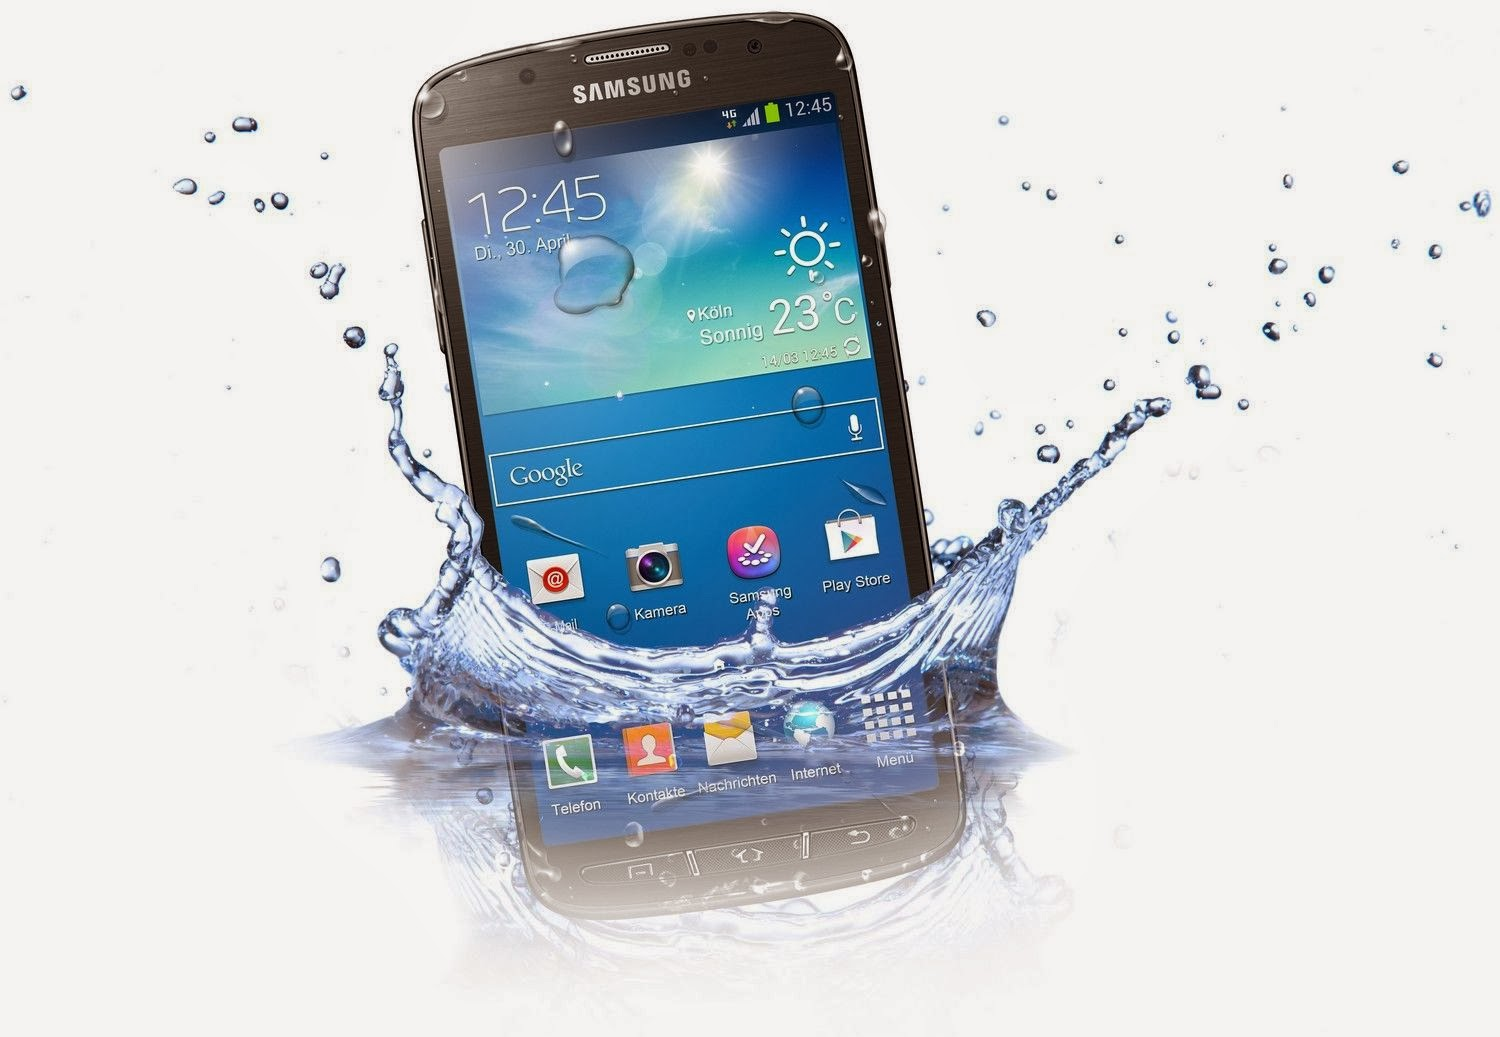 Rumor - Samsung Galaxy S5 will be water-resistant